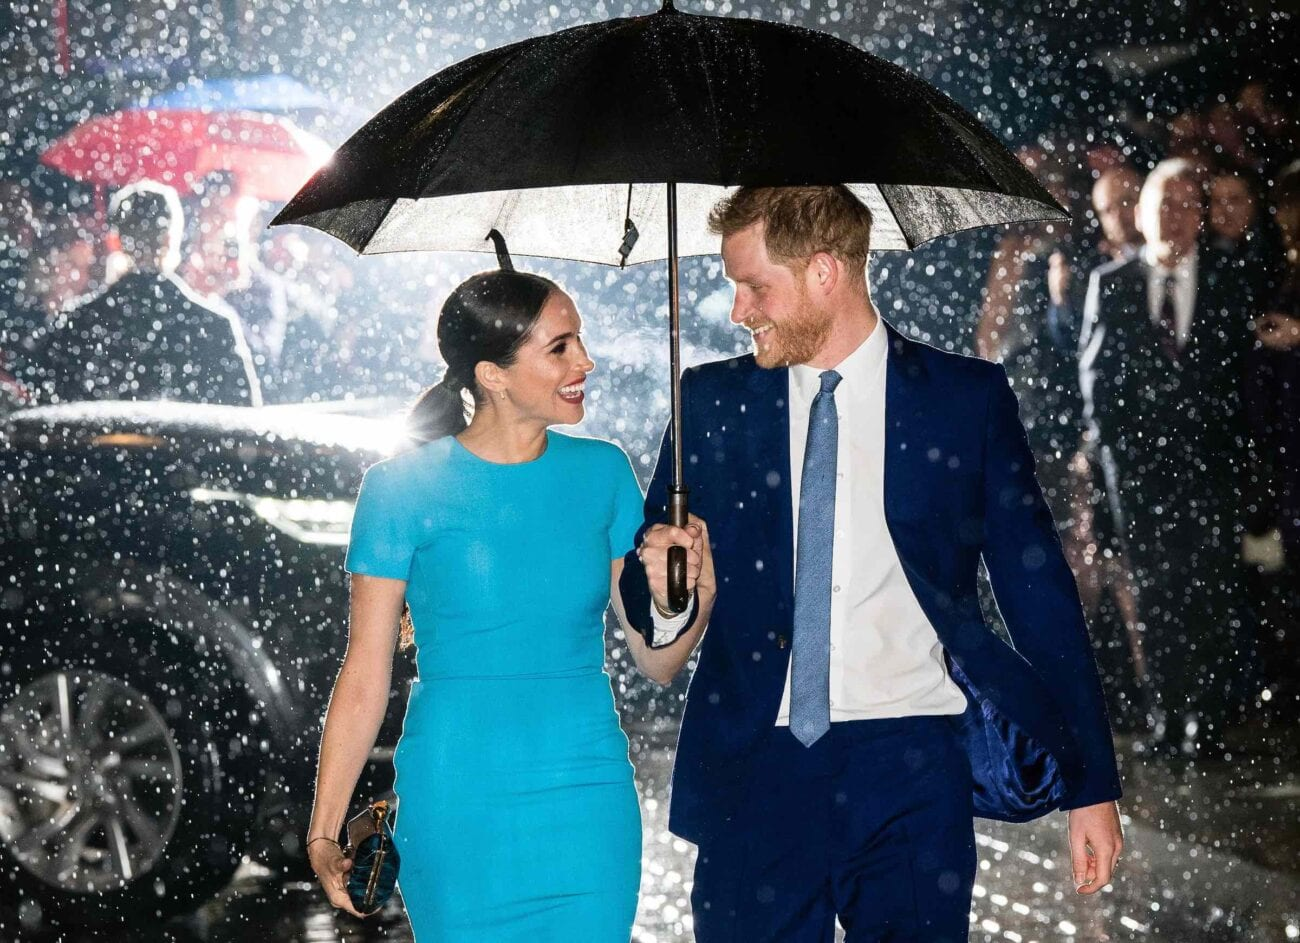 Some news outlets are saying Meghan Markle didn't actually take etiquette lessons before her marriage to Prince Harry. So, what's the truth?